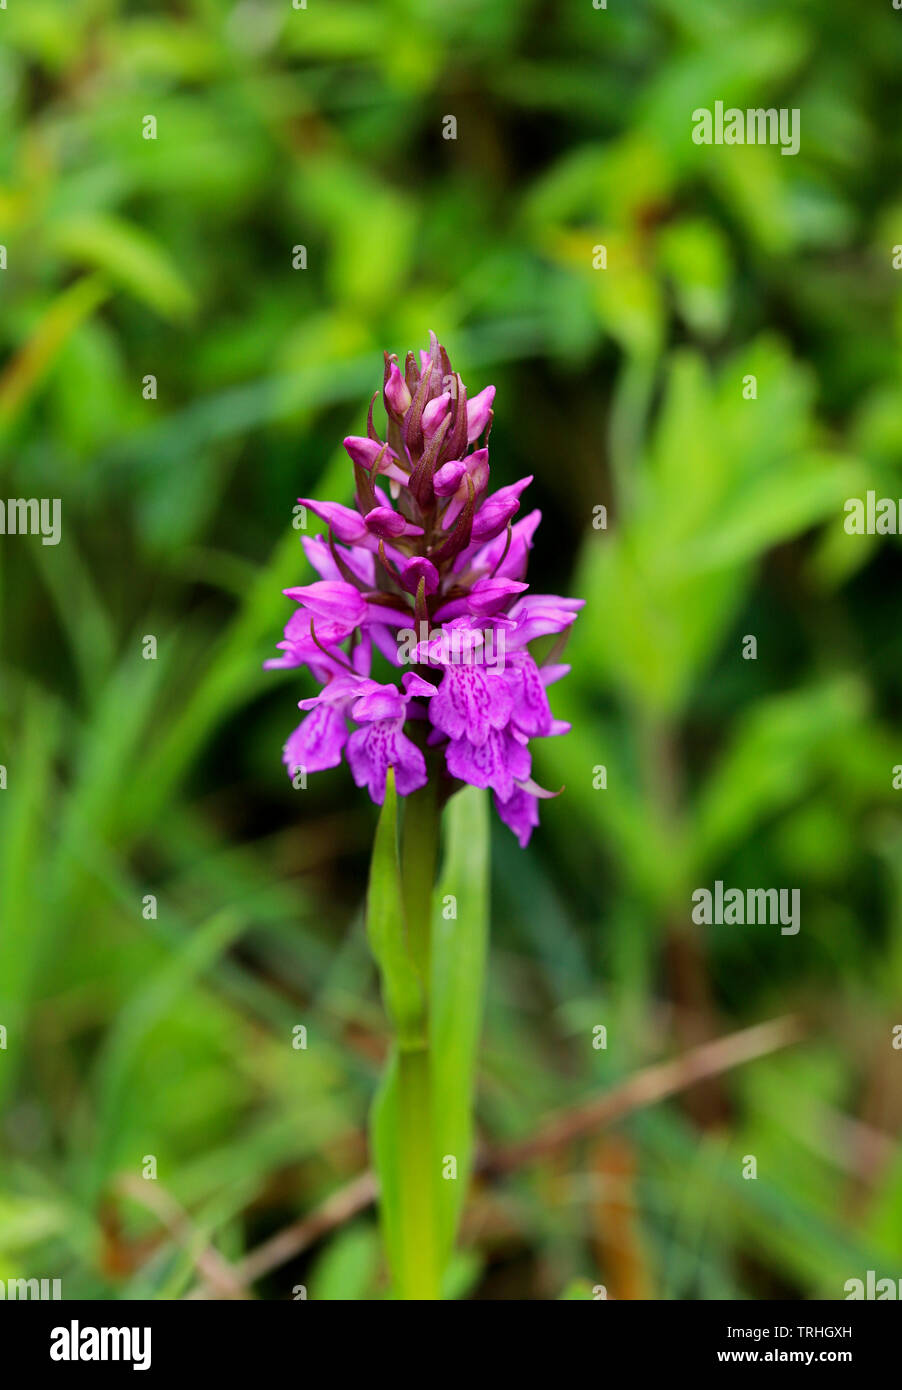 The flower spike of a Southern Marsh Orchid, Dactylorhiza praetermissa, coming into bloom. - Stock Image